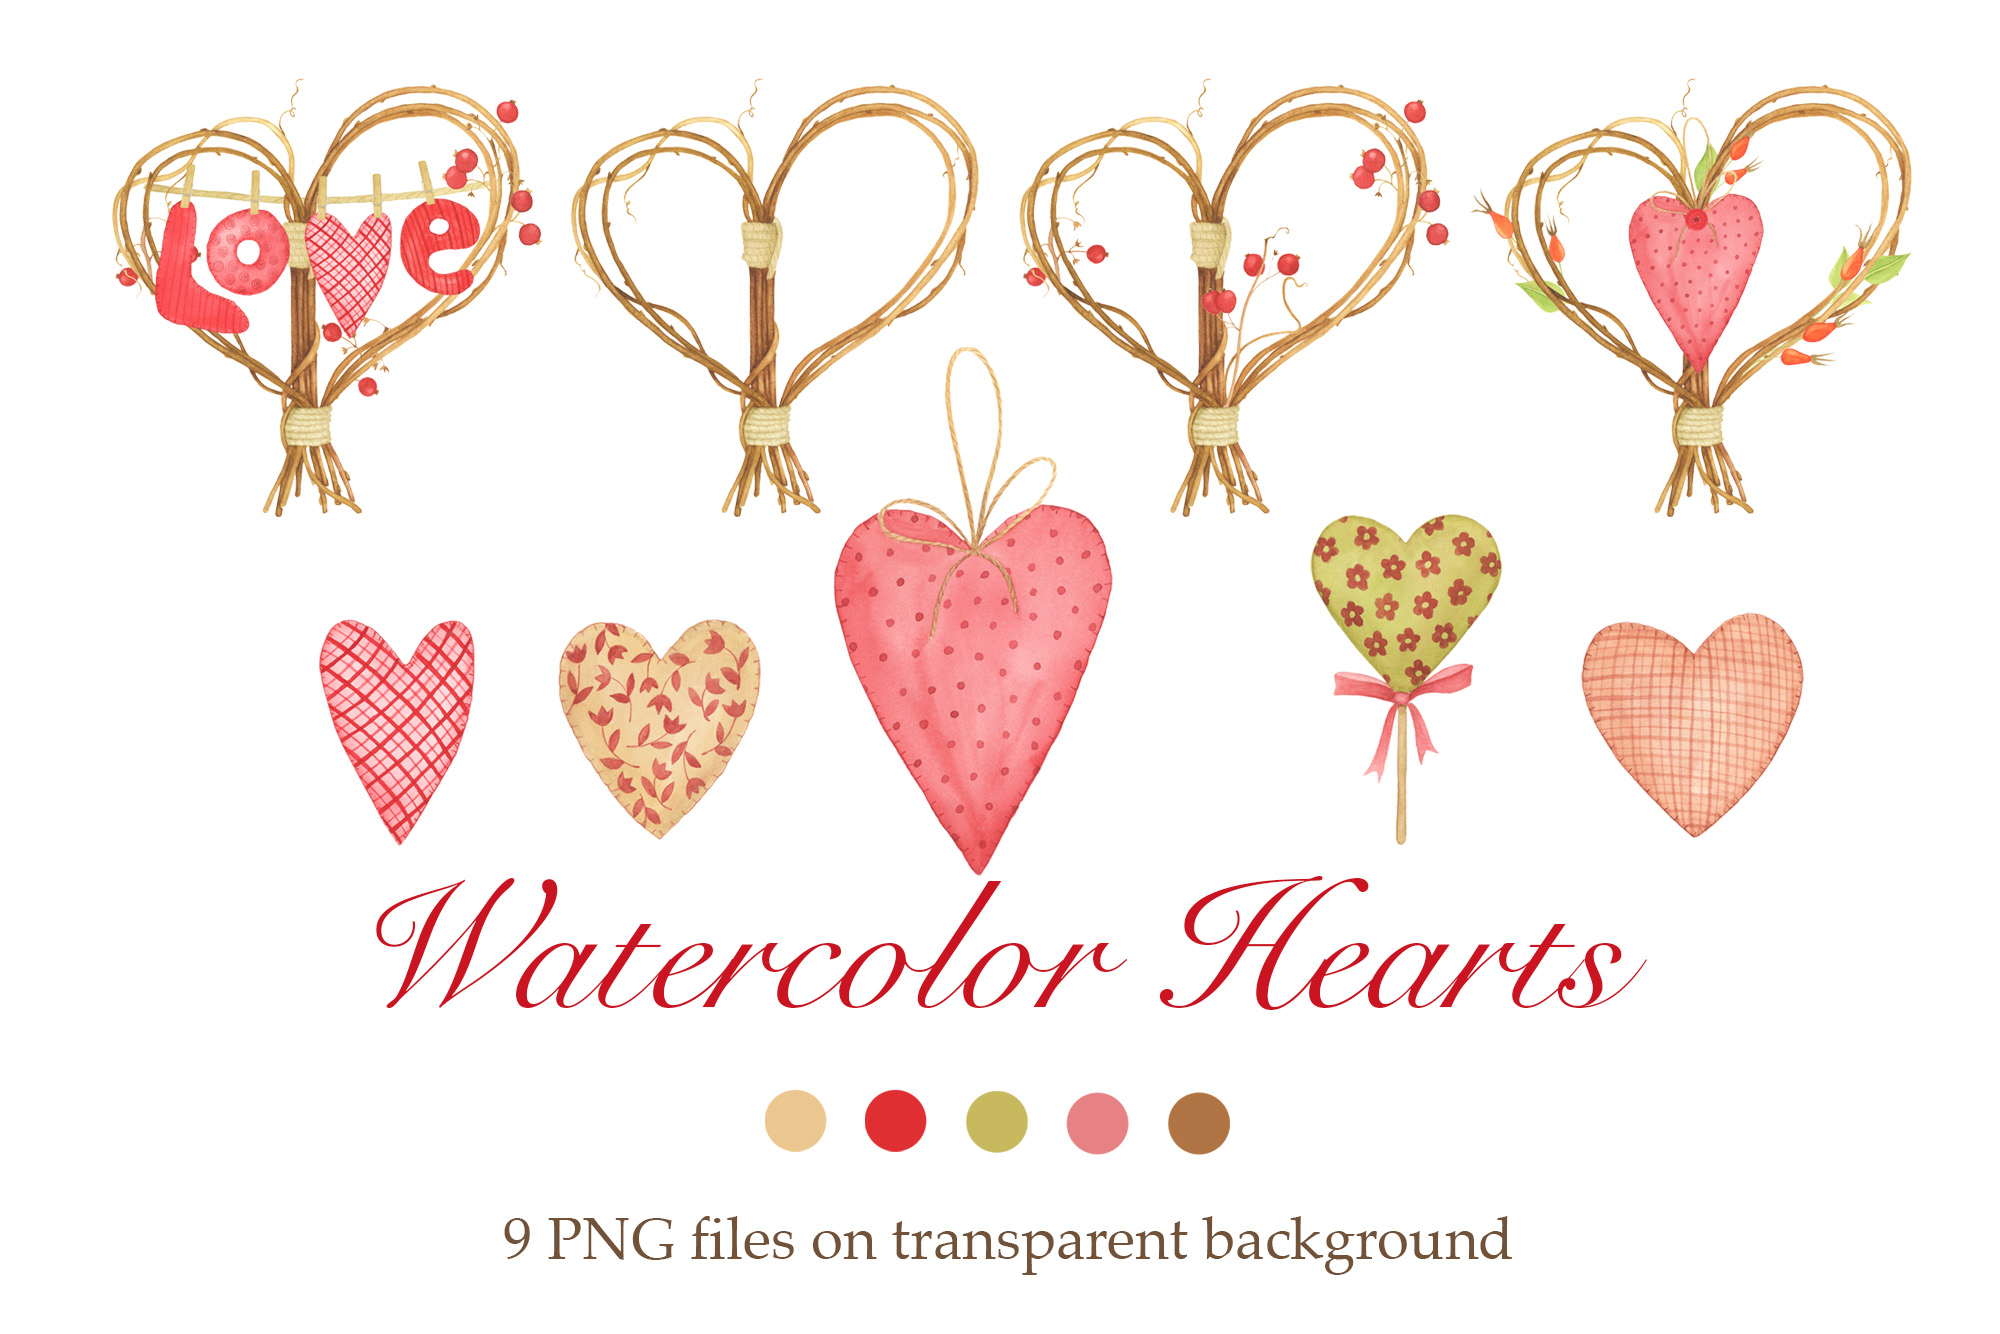 Download Free Watercolor Hearts Clipart Graphic By Tpushnaya Creative Fabrica for Cricut Explore, Silhouette and other cutting machines.